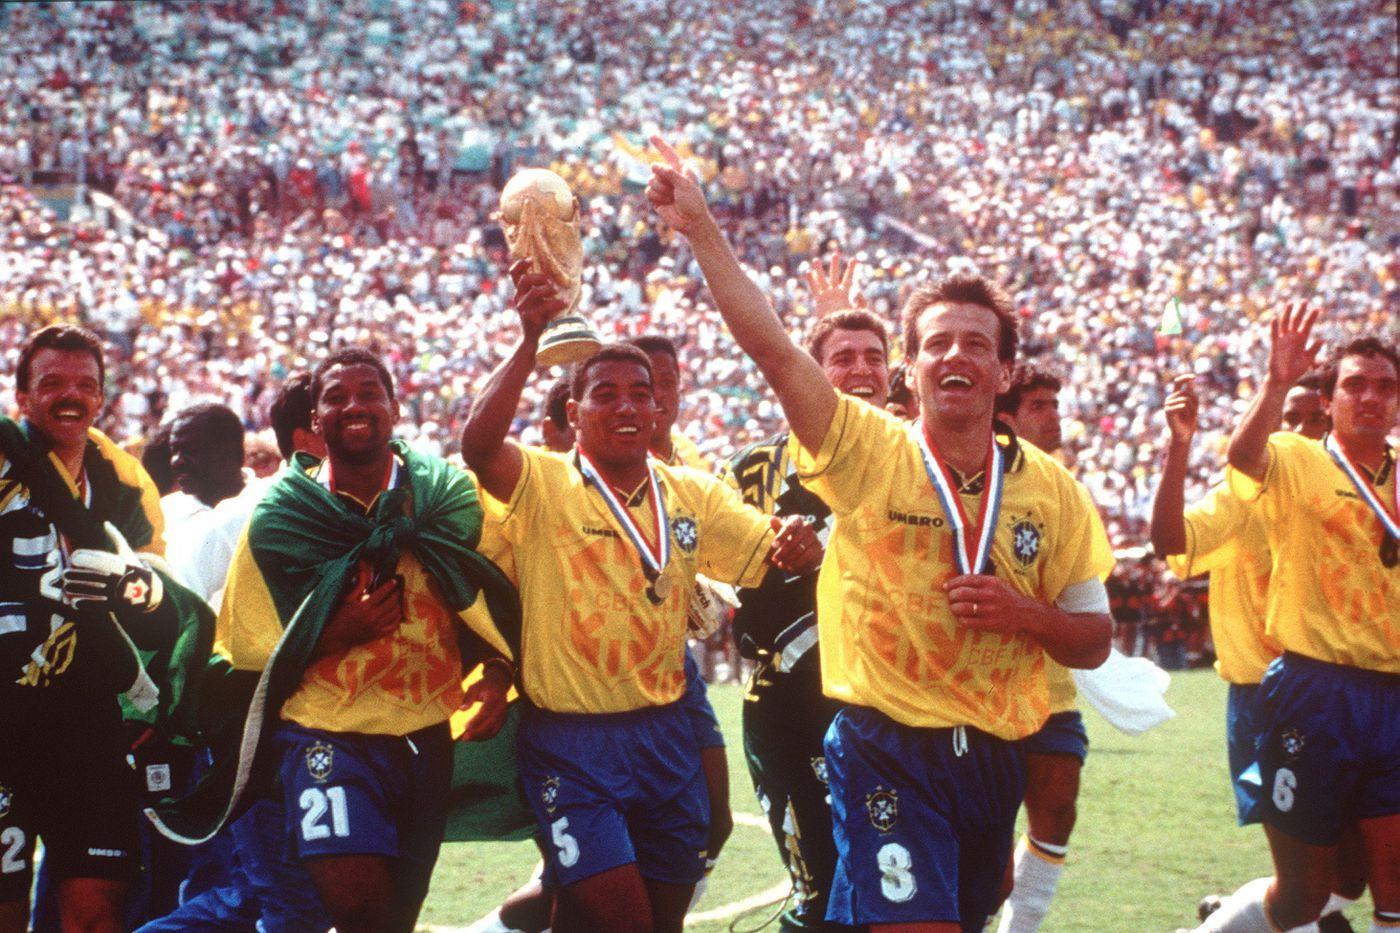 The World Cup is coming, and memories from '94 flood back